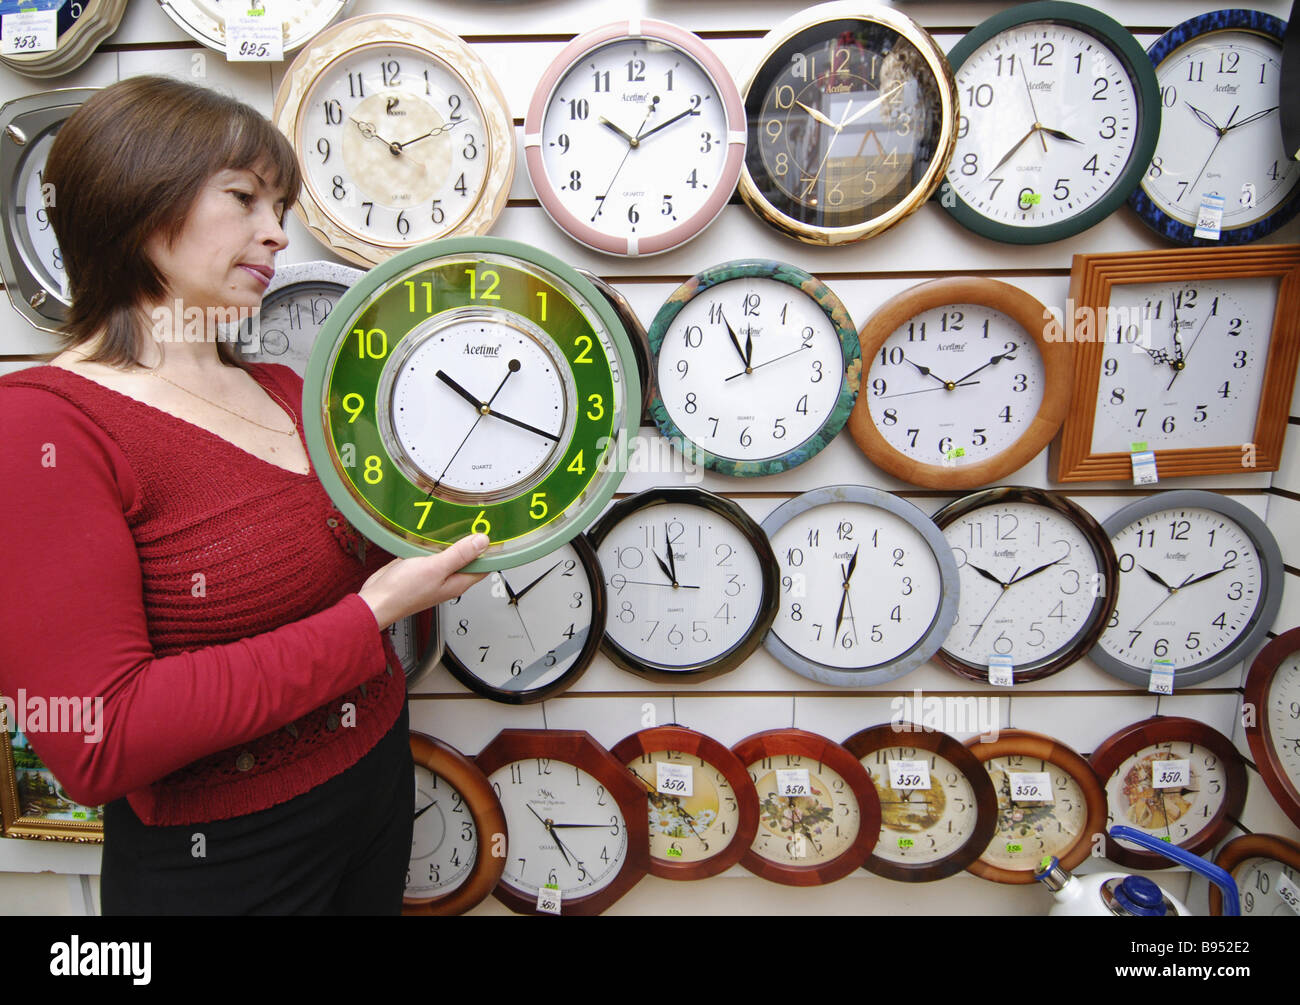 Russia passes over to Winter Time in the early hours of October 28 - Stock Image